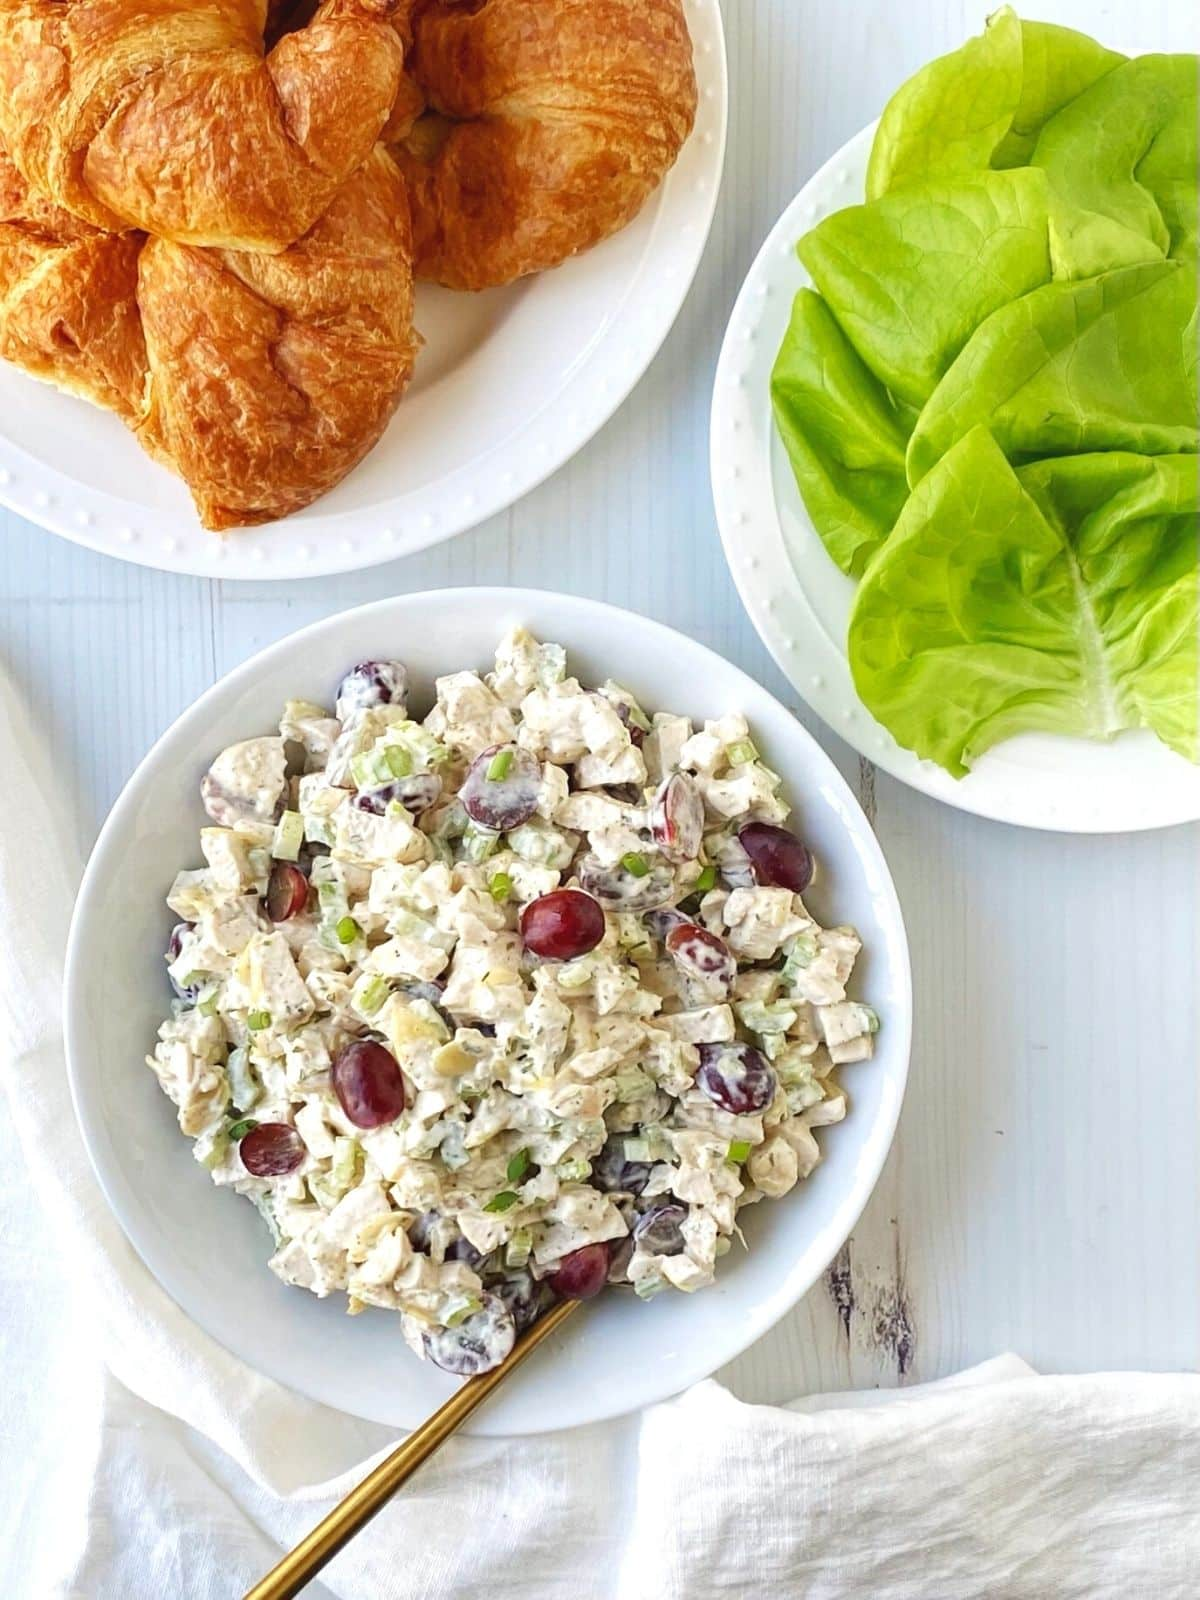 bowl of chicken salad with a plate of croissants and lettuce for building sandwiches